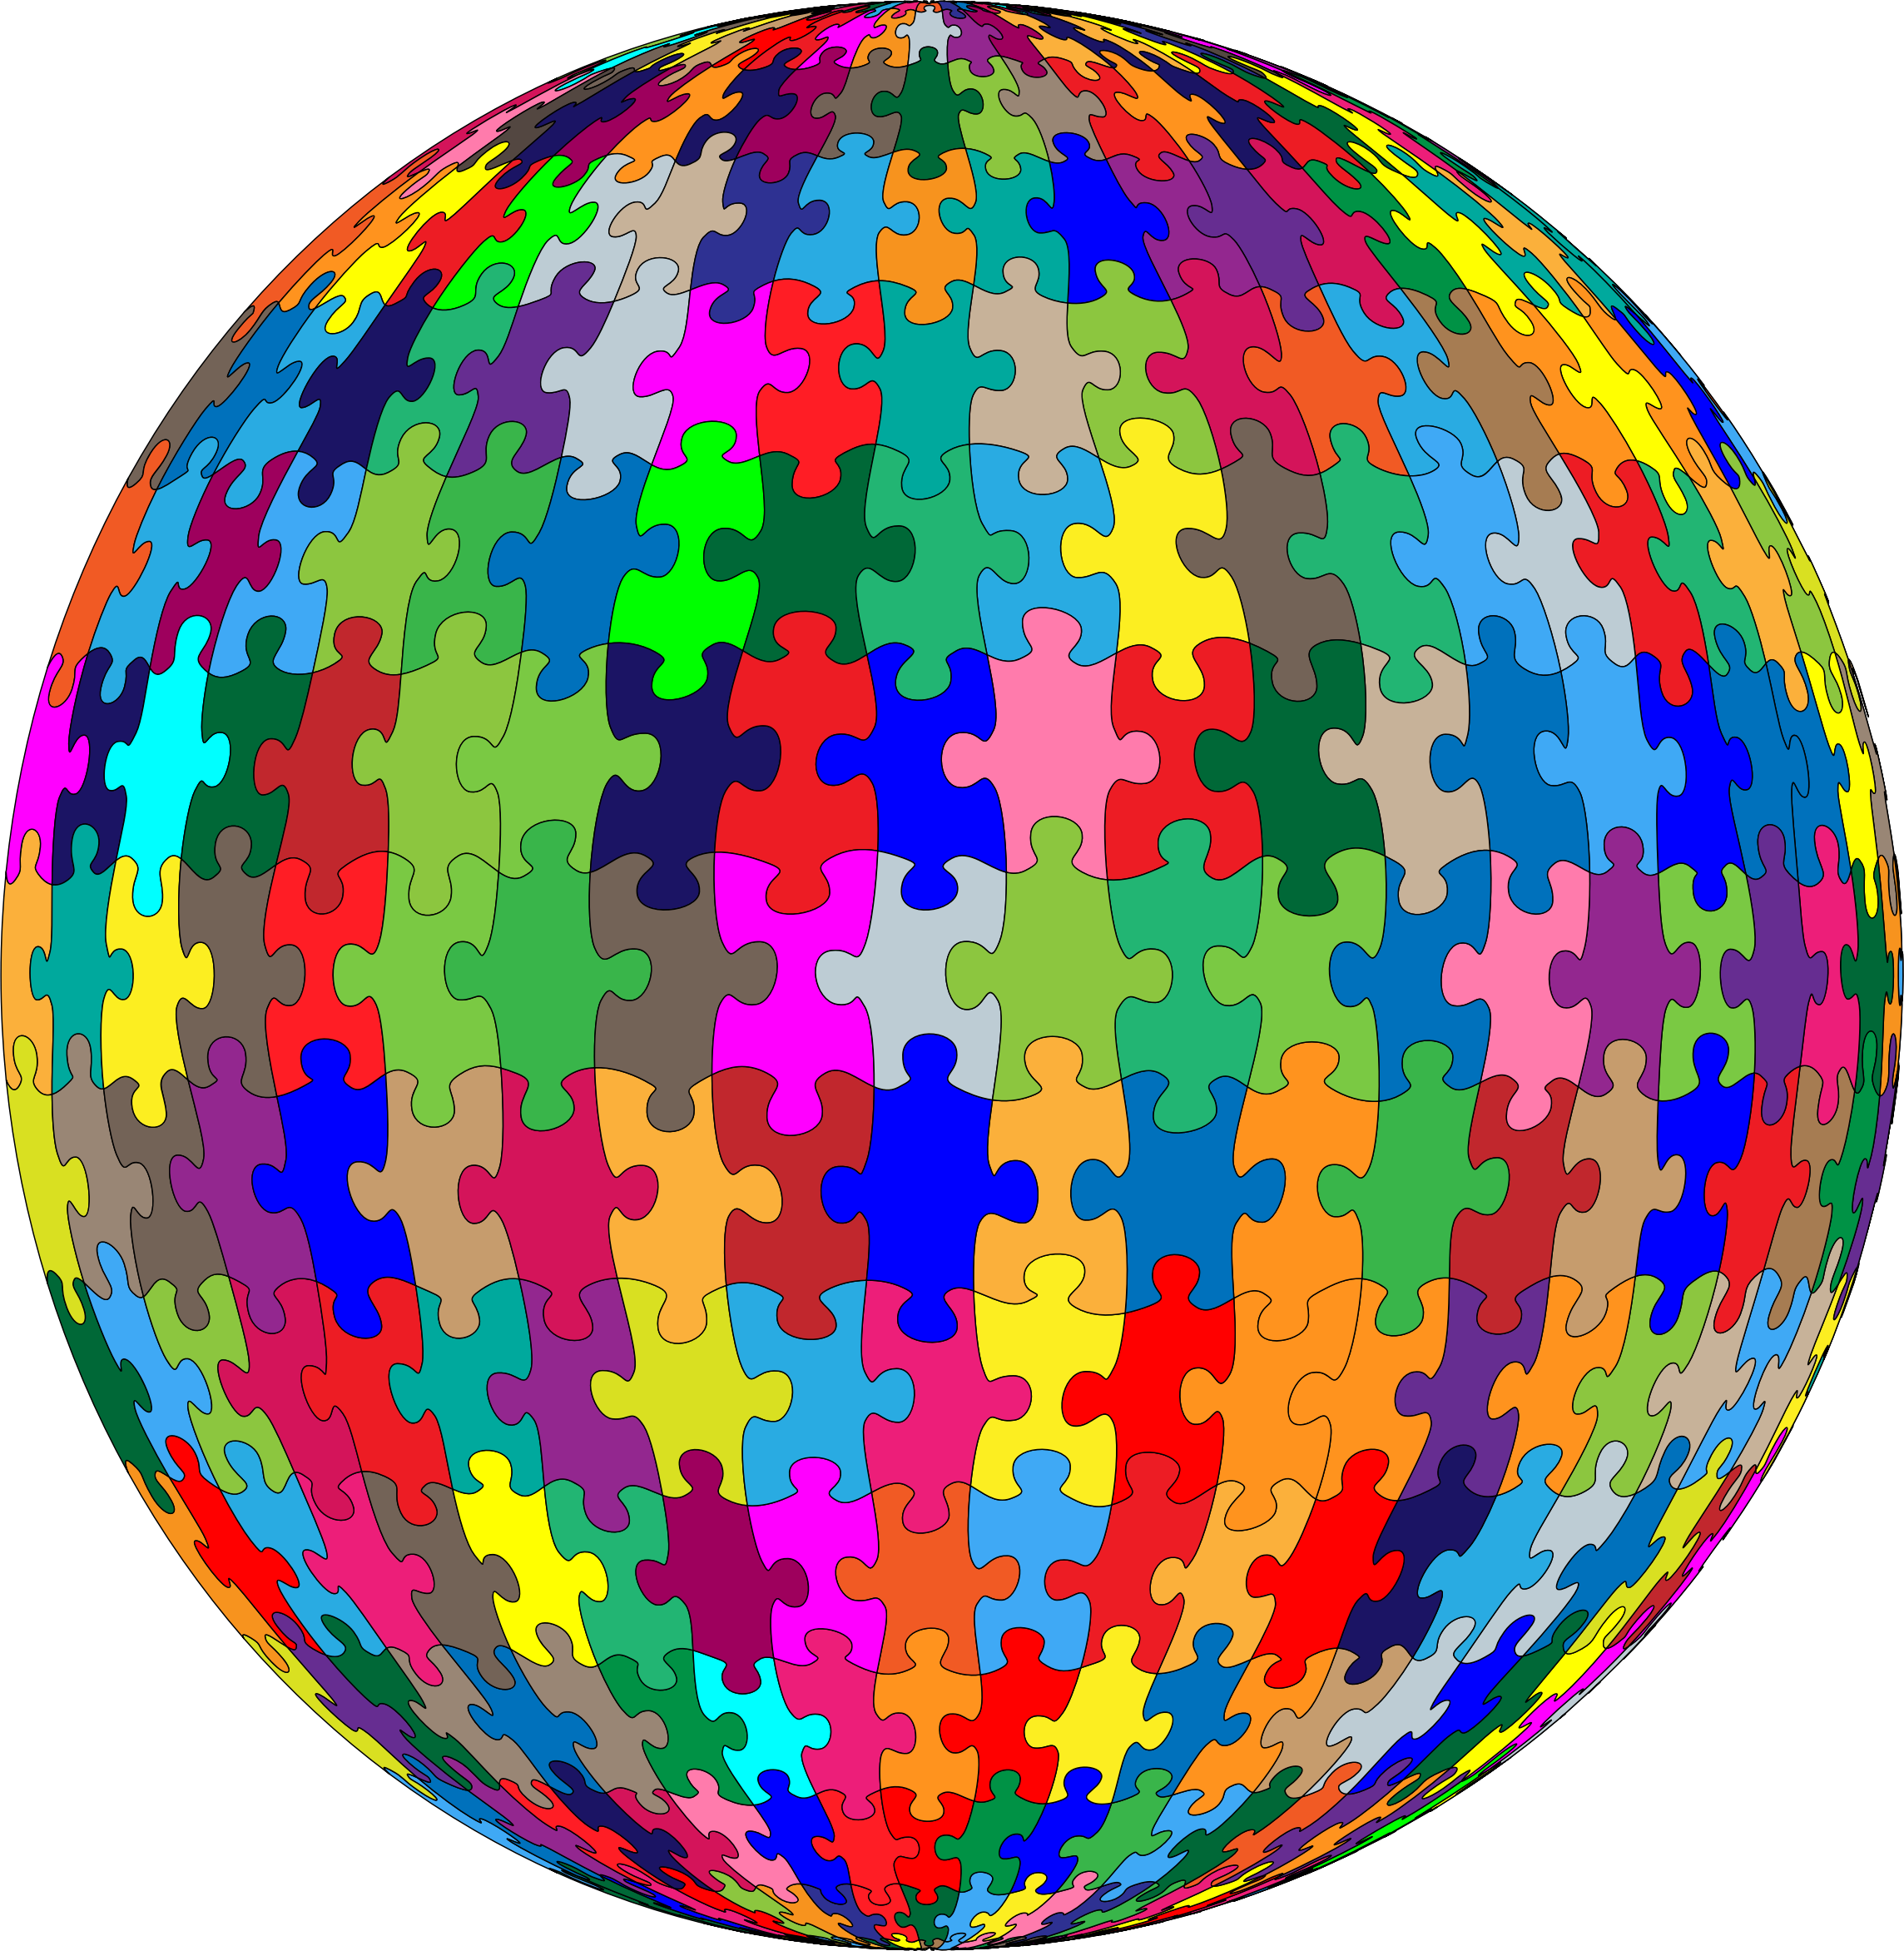 Multicolored Jigsaw Puzzle Pieces Sphere by GDJ